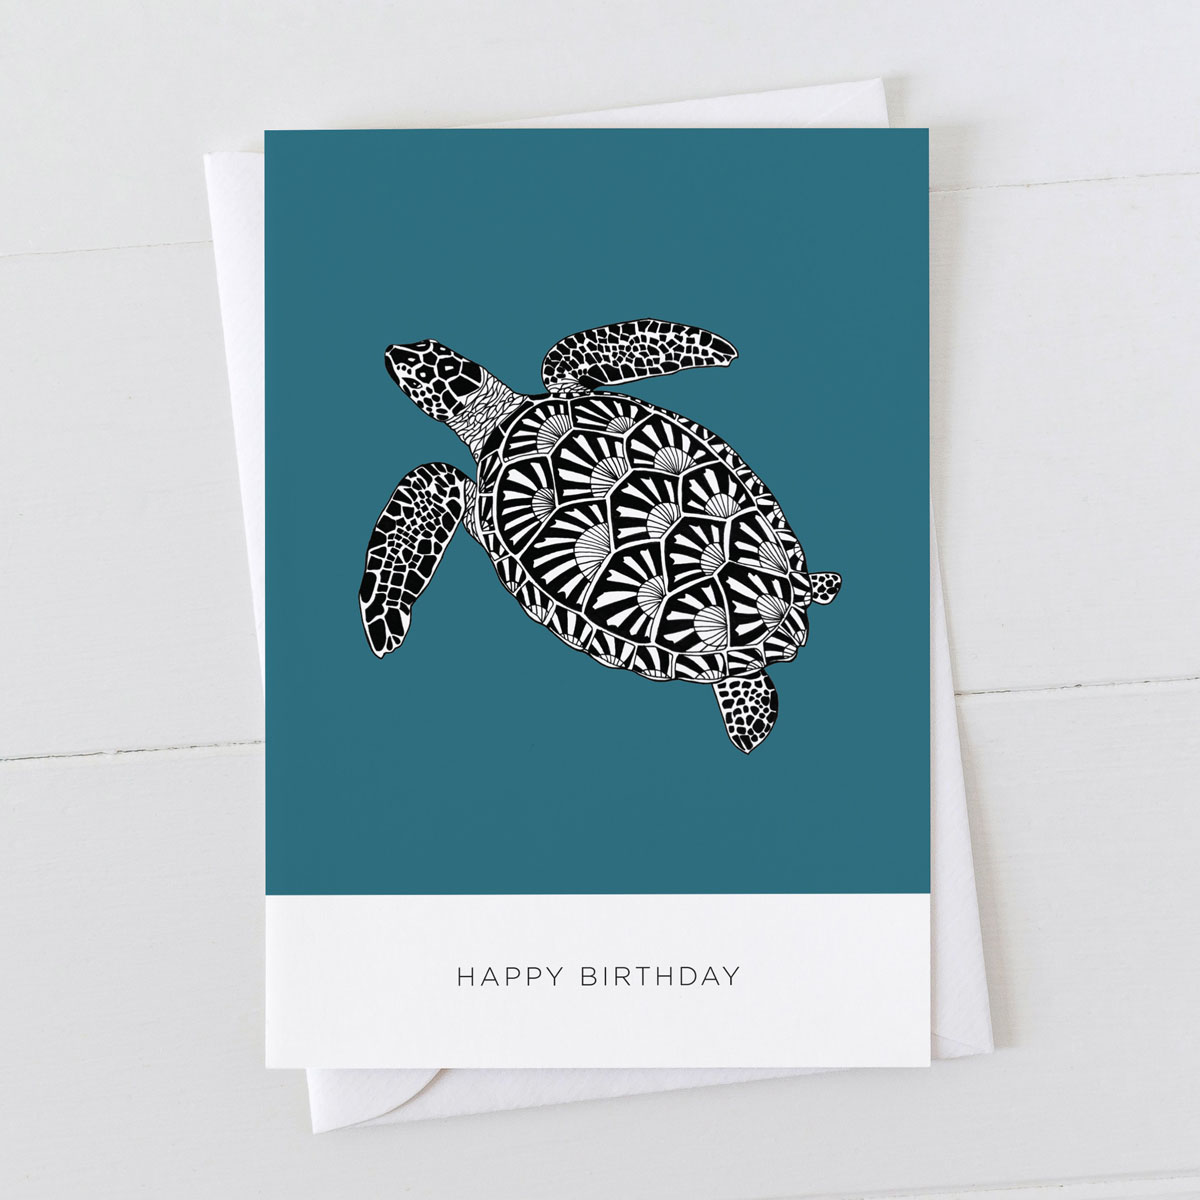 Turtle Happy Birthday Illustration Greeting Card